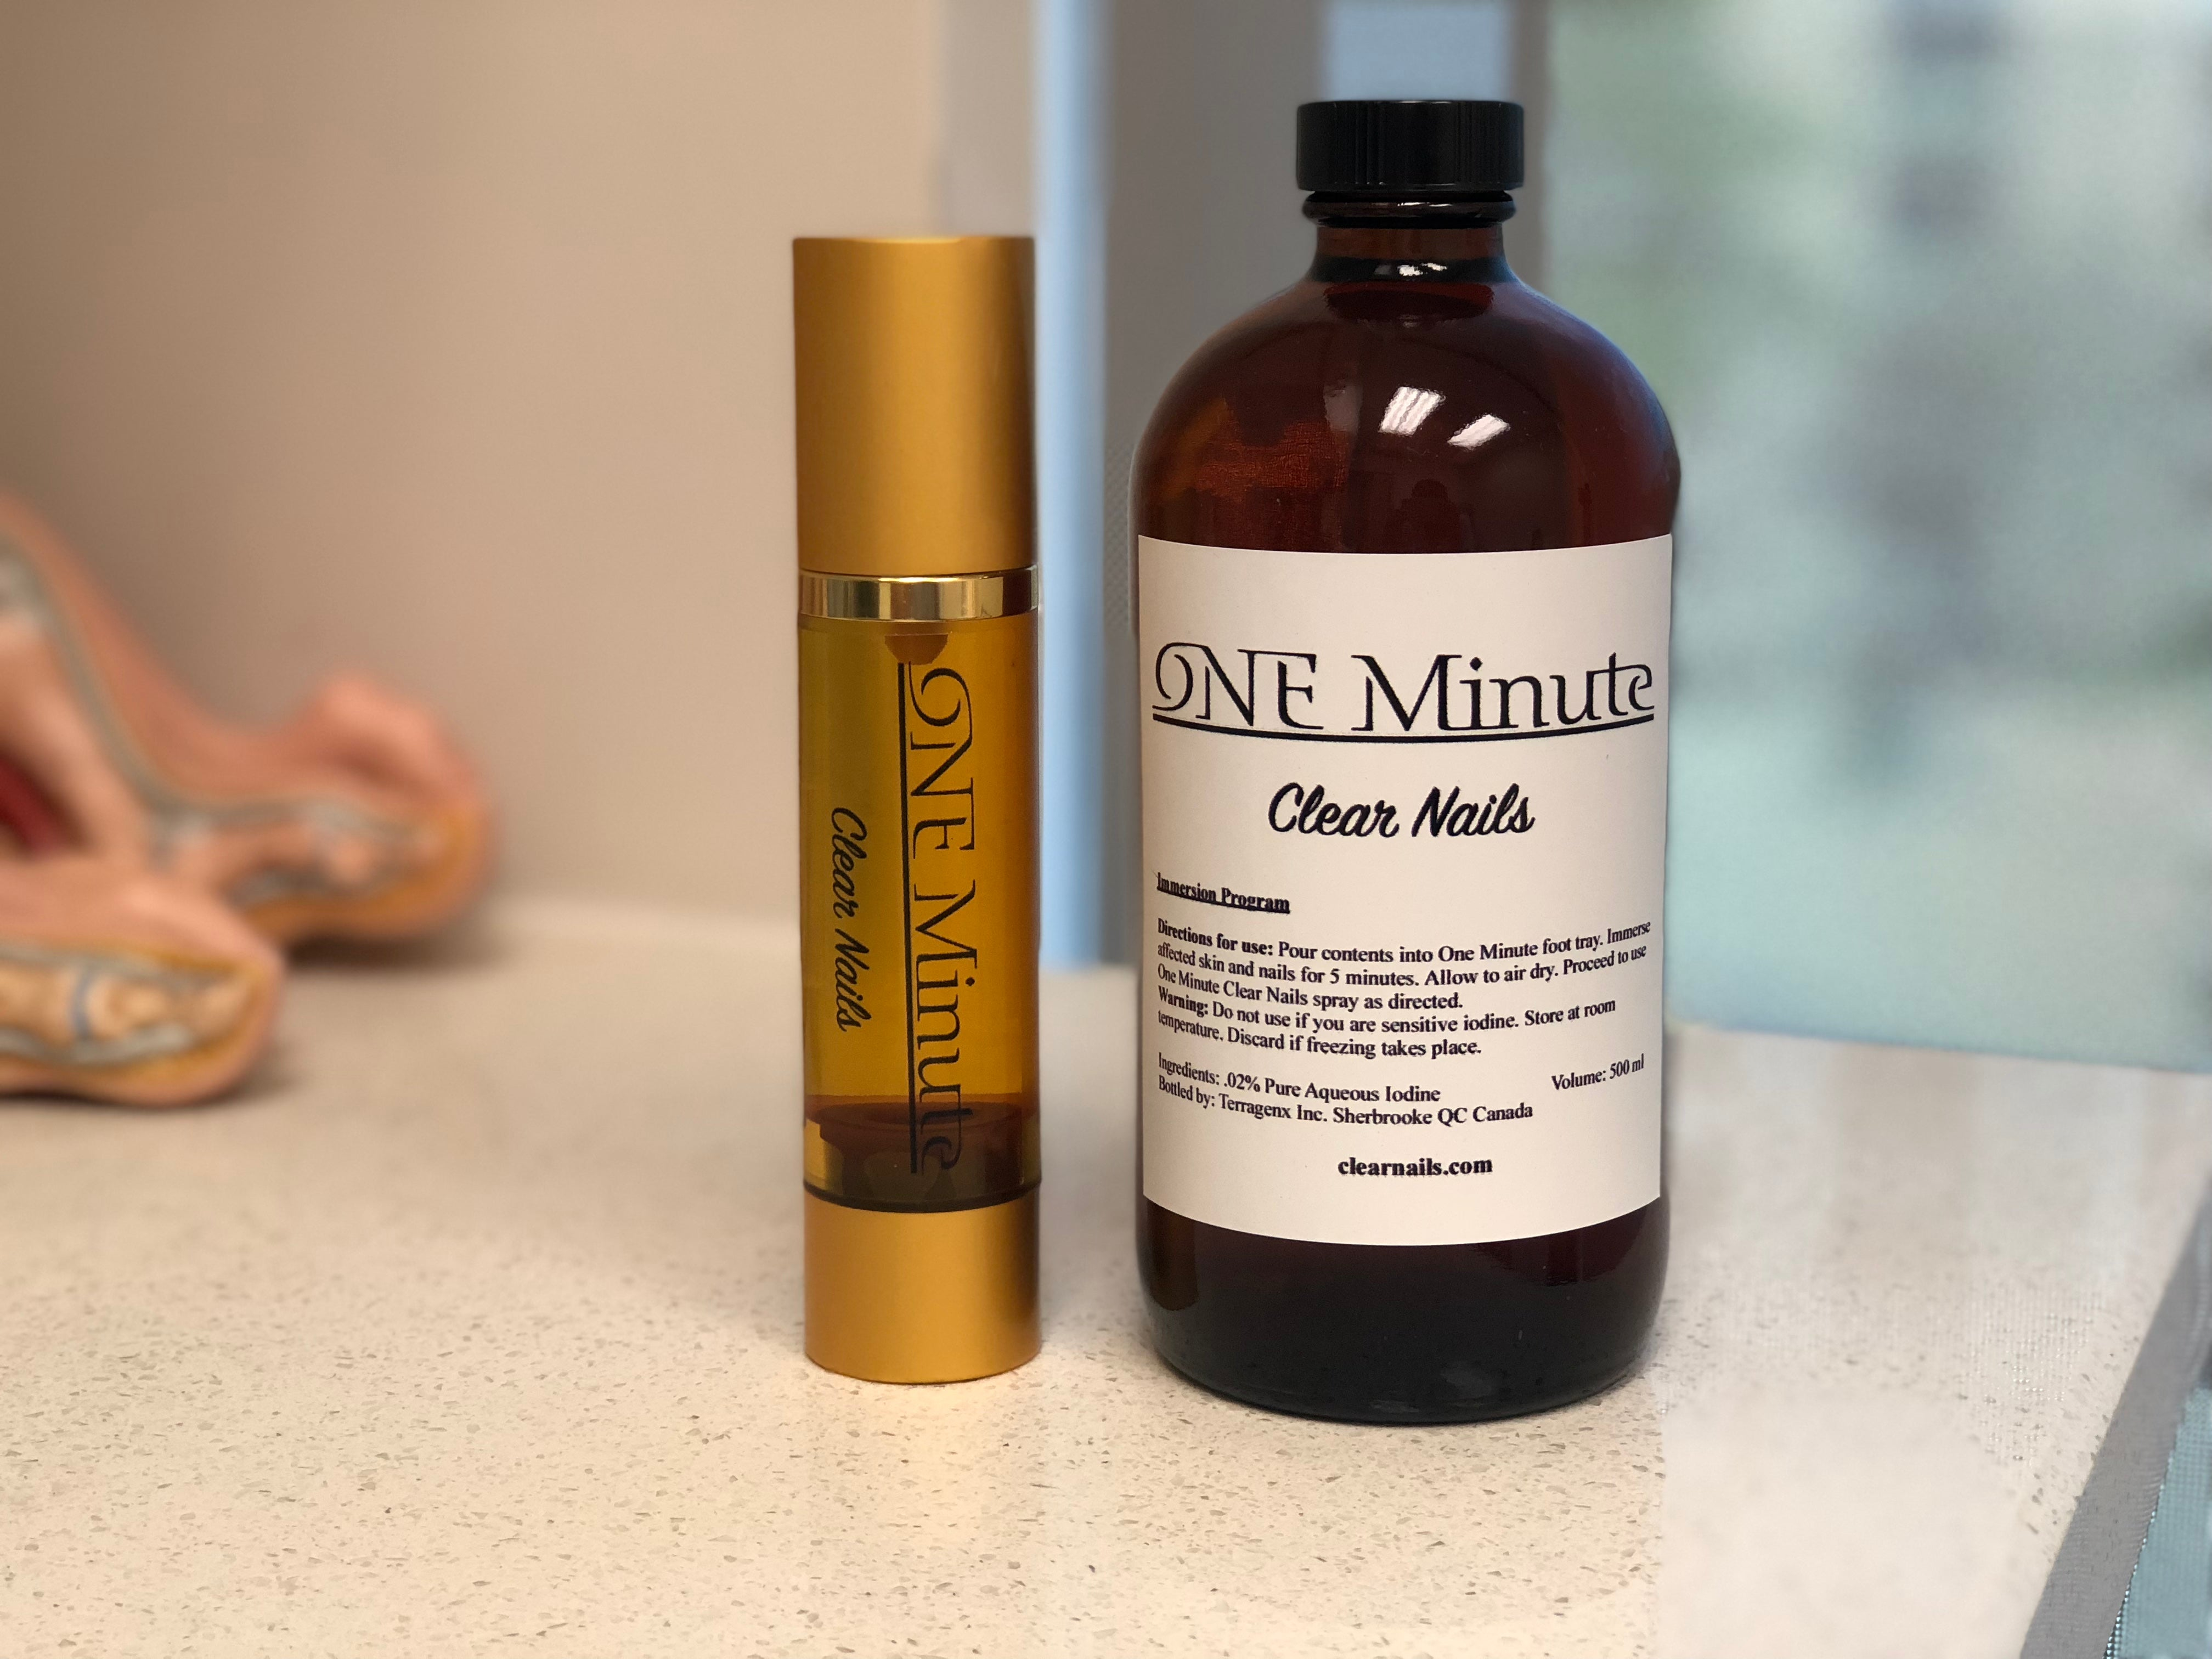 One Minute Clear Nails Kit – The Toe Bro